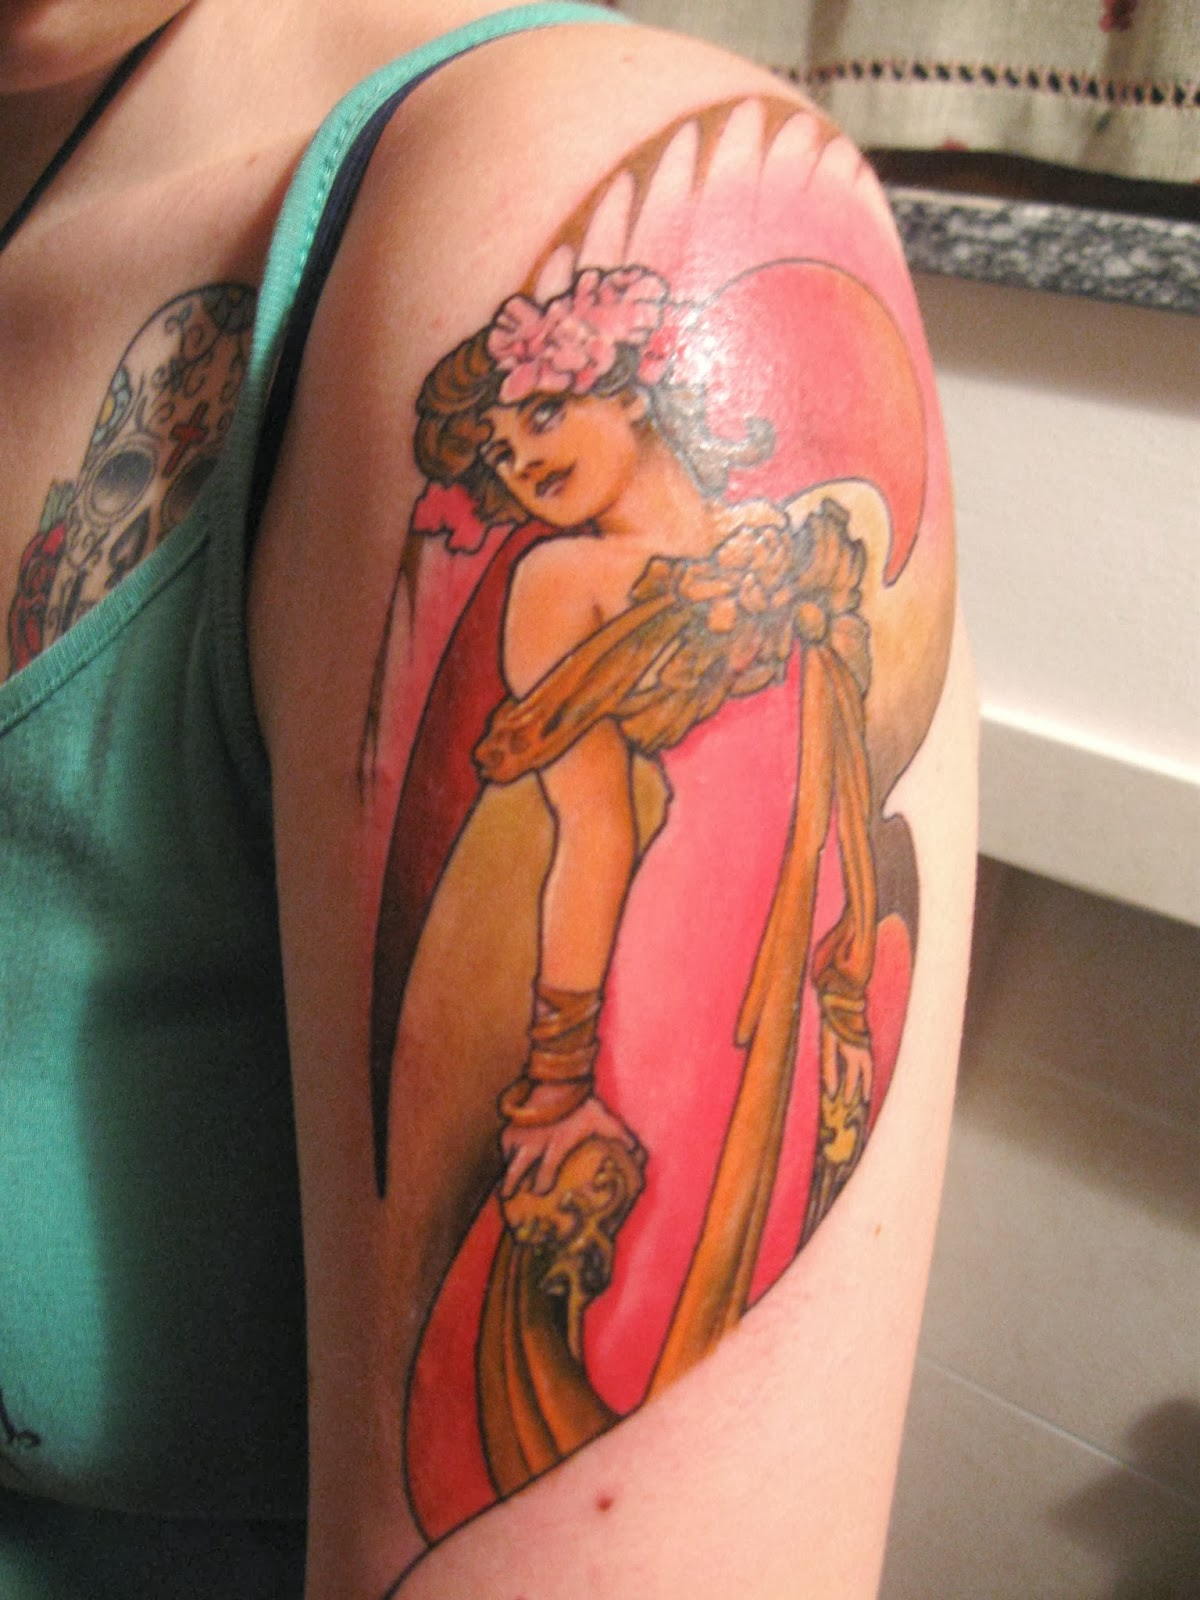 Tattooz Designs Art Nouveau Tattoos For Women Art Ideas And Designs